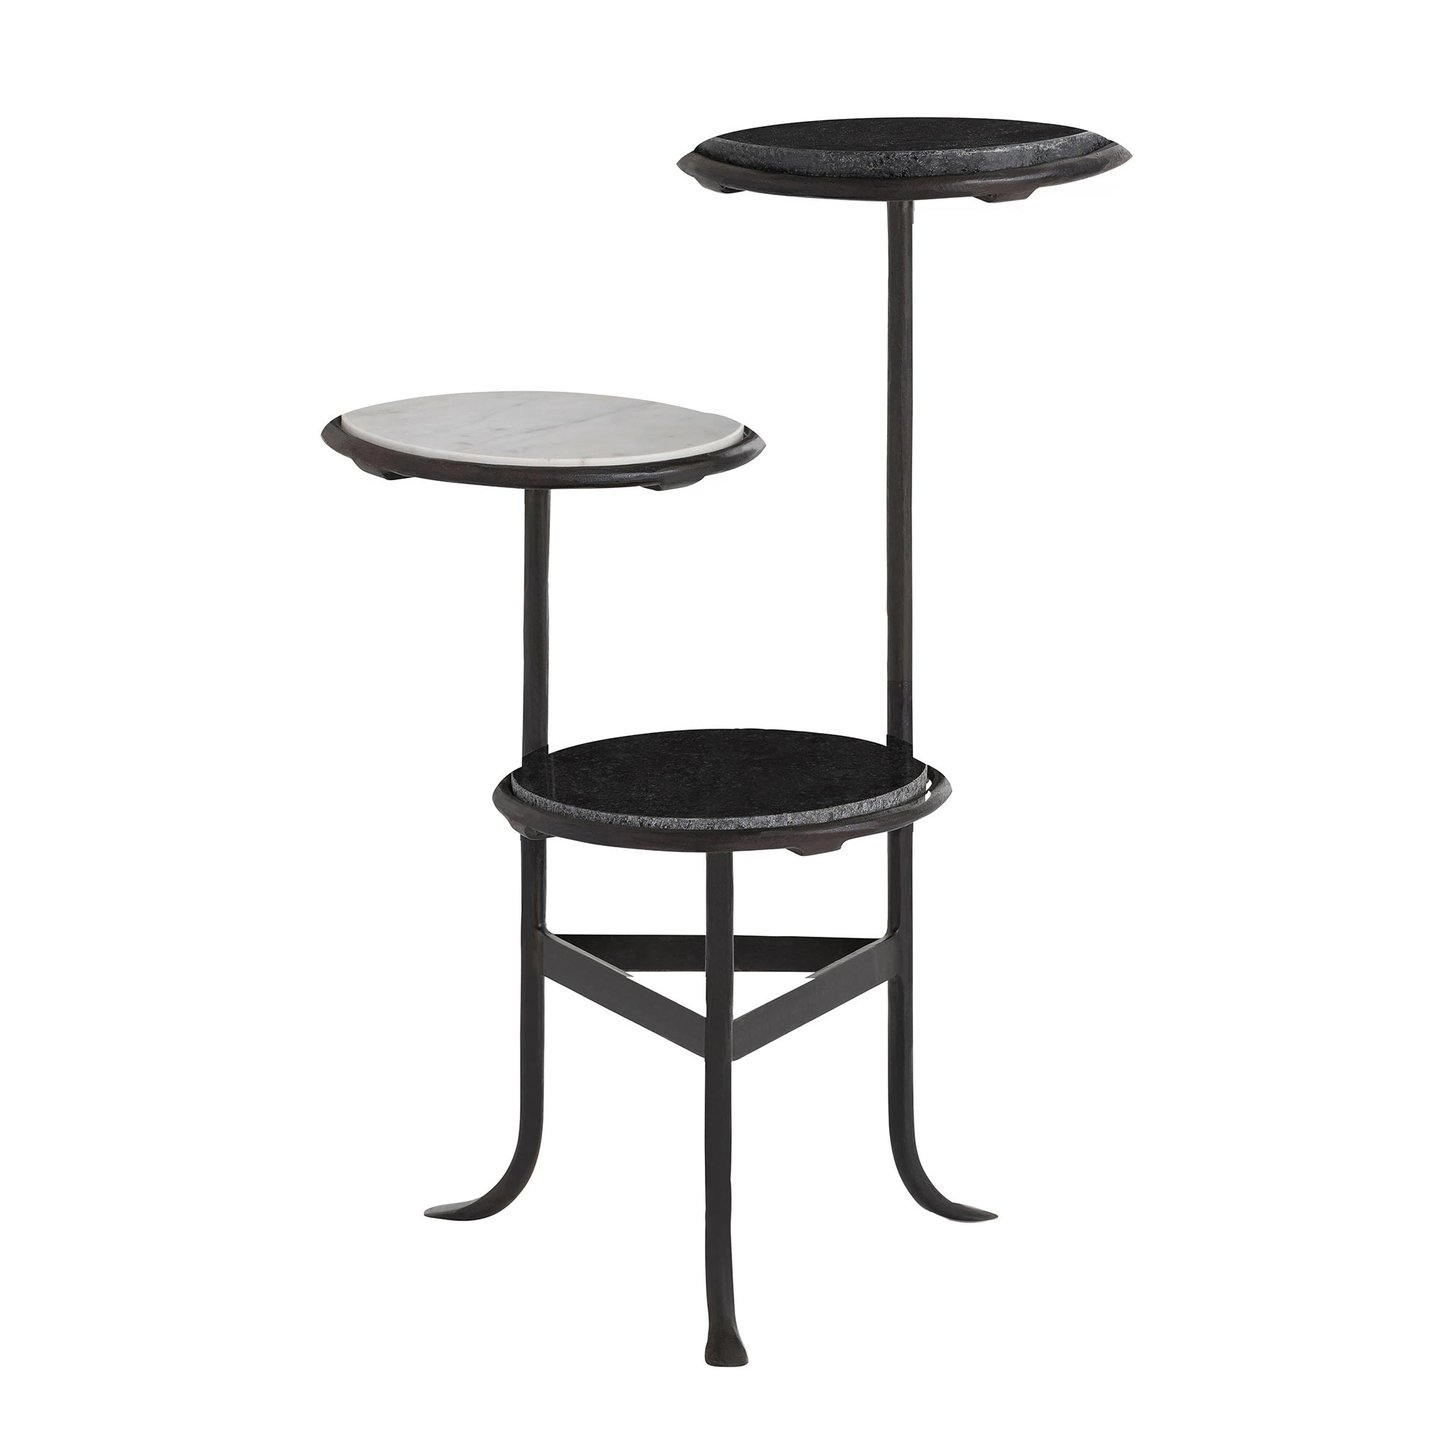 arteriors home hubert accent table hurbert hammered metal iron round oak side cabinet paint tablette prix purchase linens tall outdoor pier aluminum patio furniture leick corner